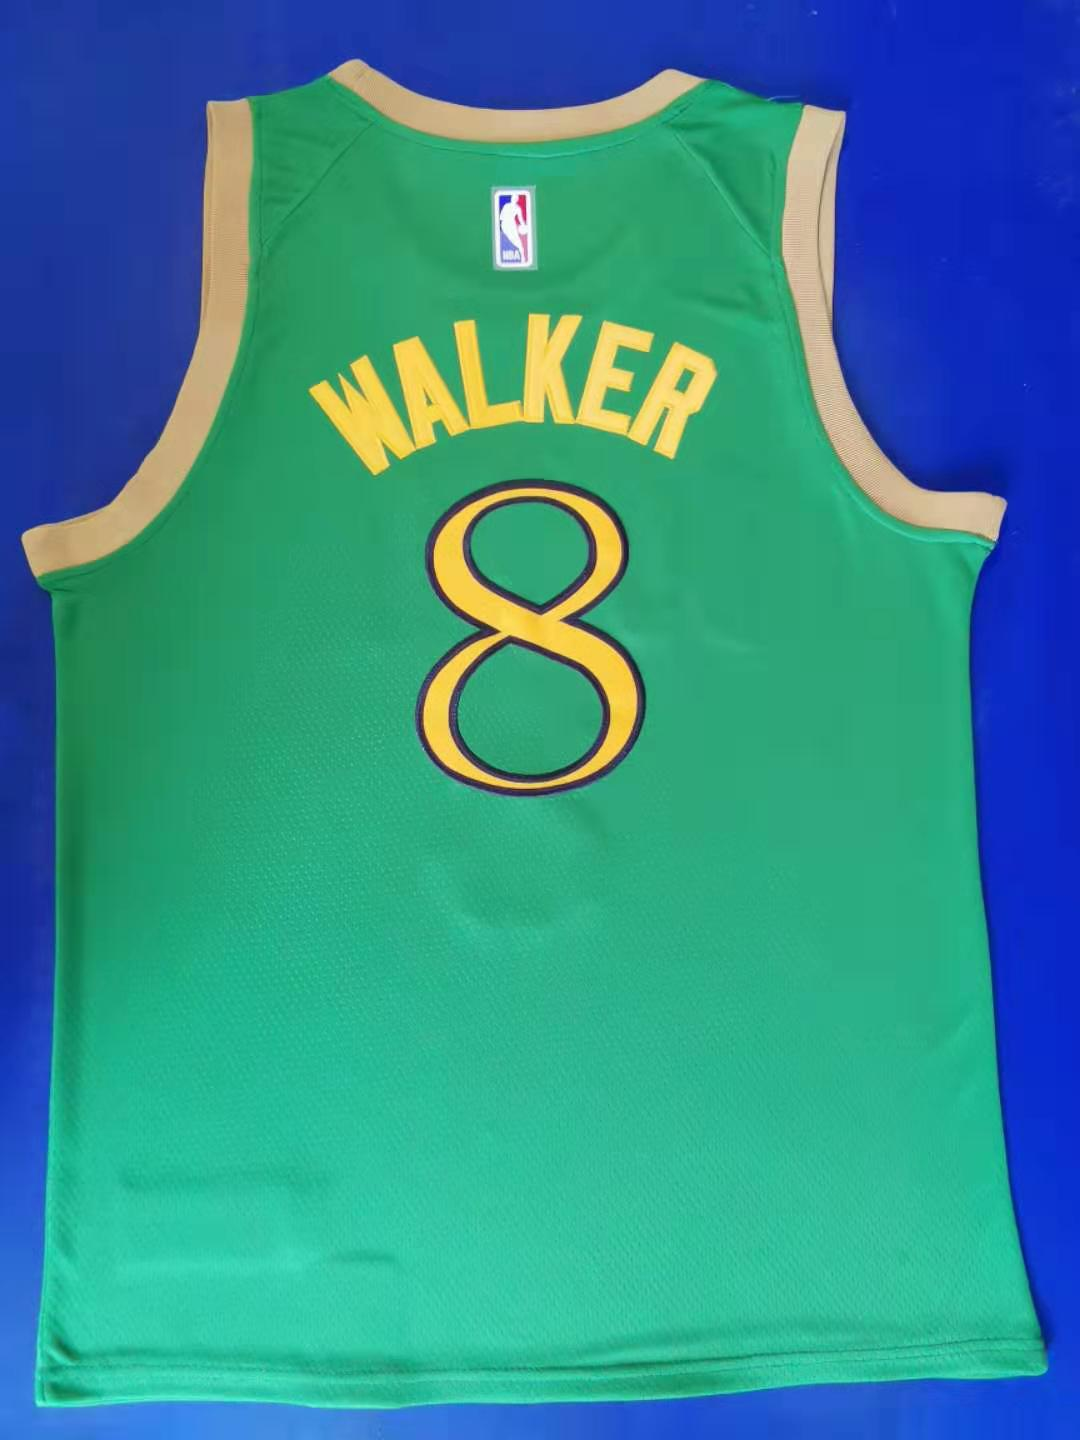 2020 Men Boston Celtics 8 Walker Green City Edition limited Nike NBA Jerseys